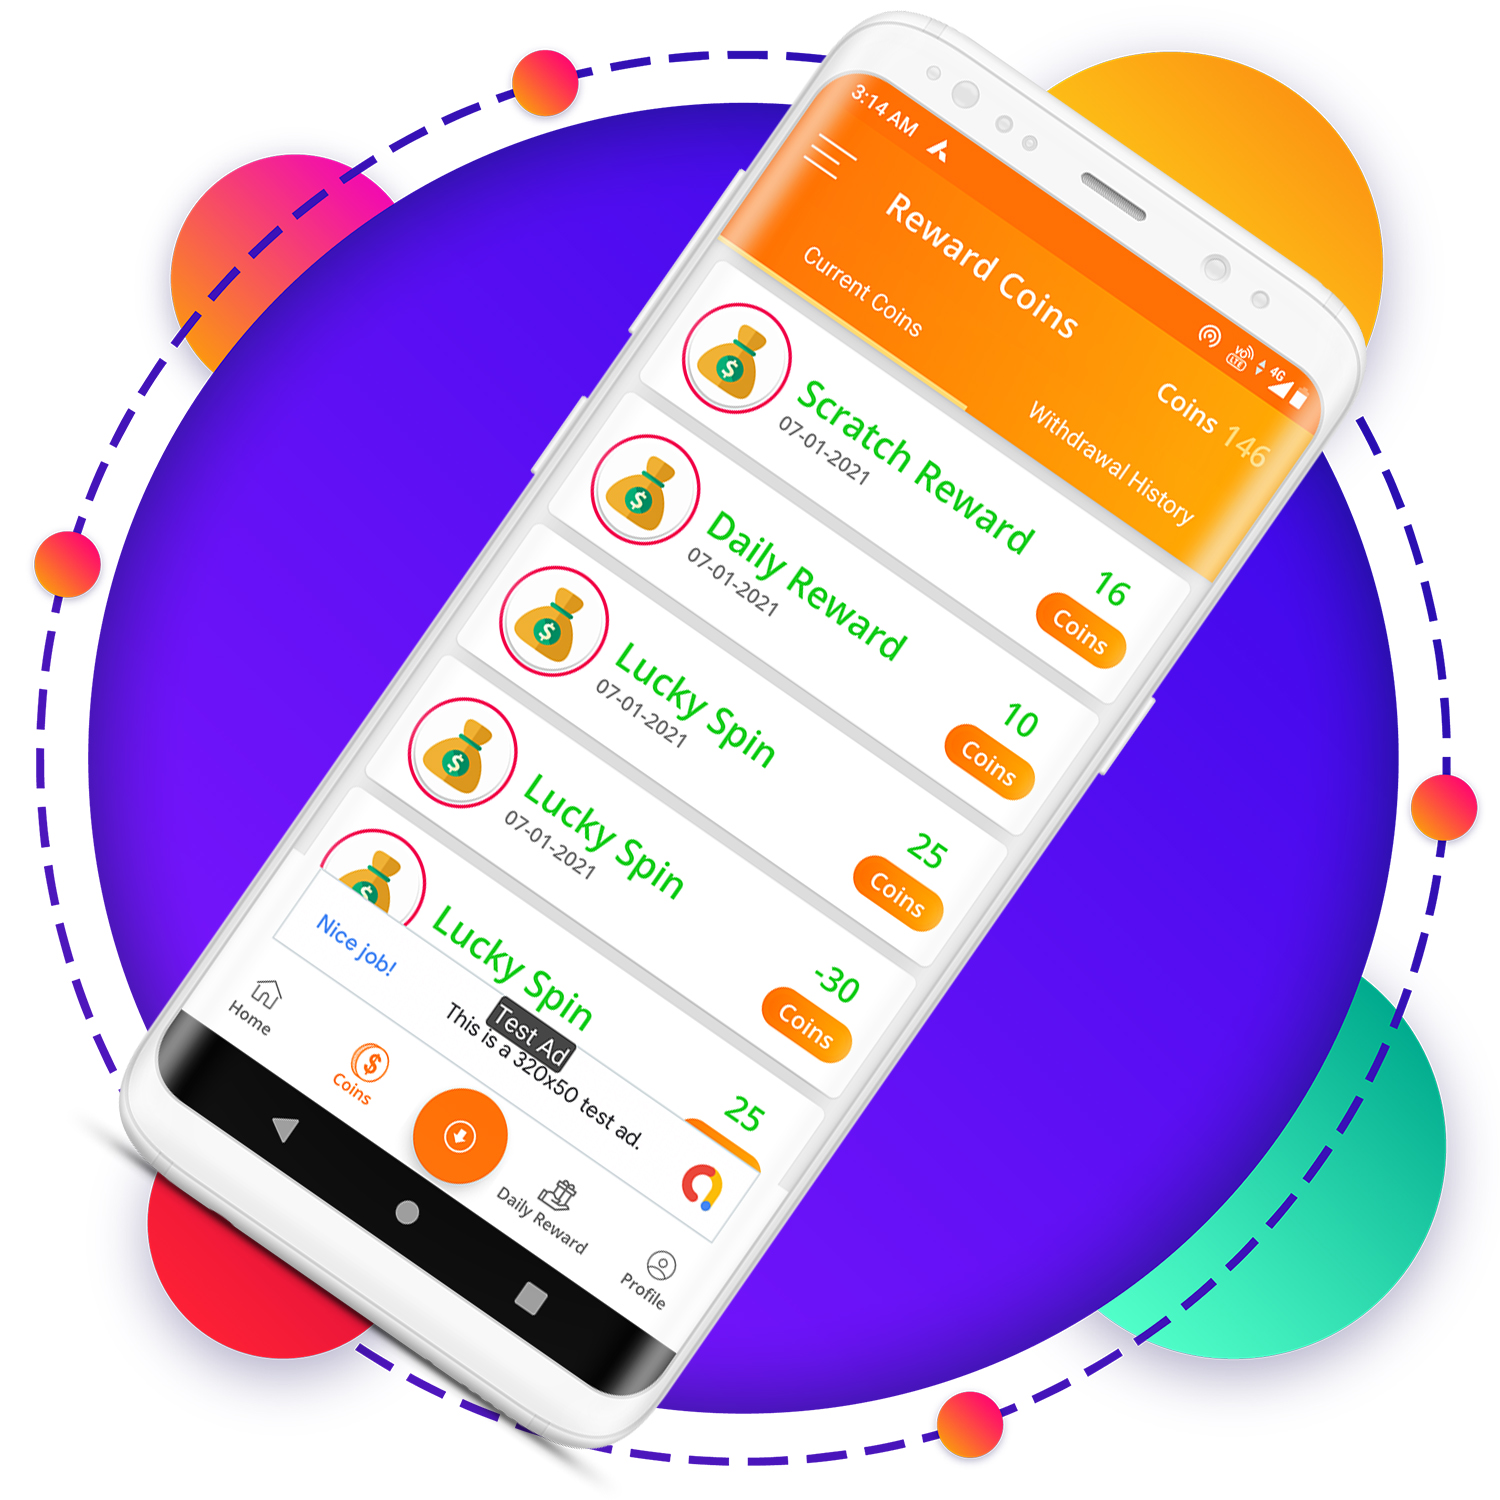 QuickCash All In One Money Earning Android App + Games + WhatsApp Tools + Earning System Admin Panel - 1